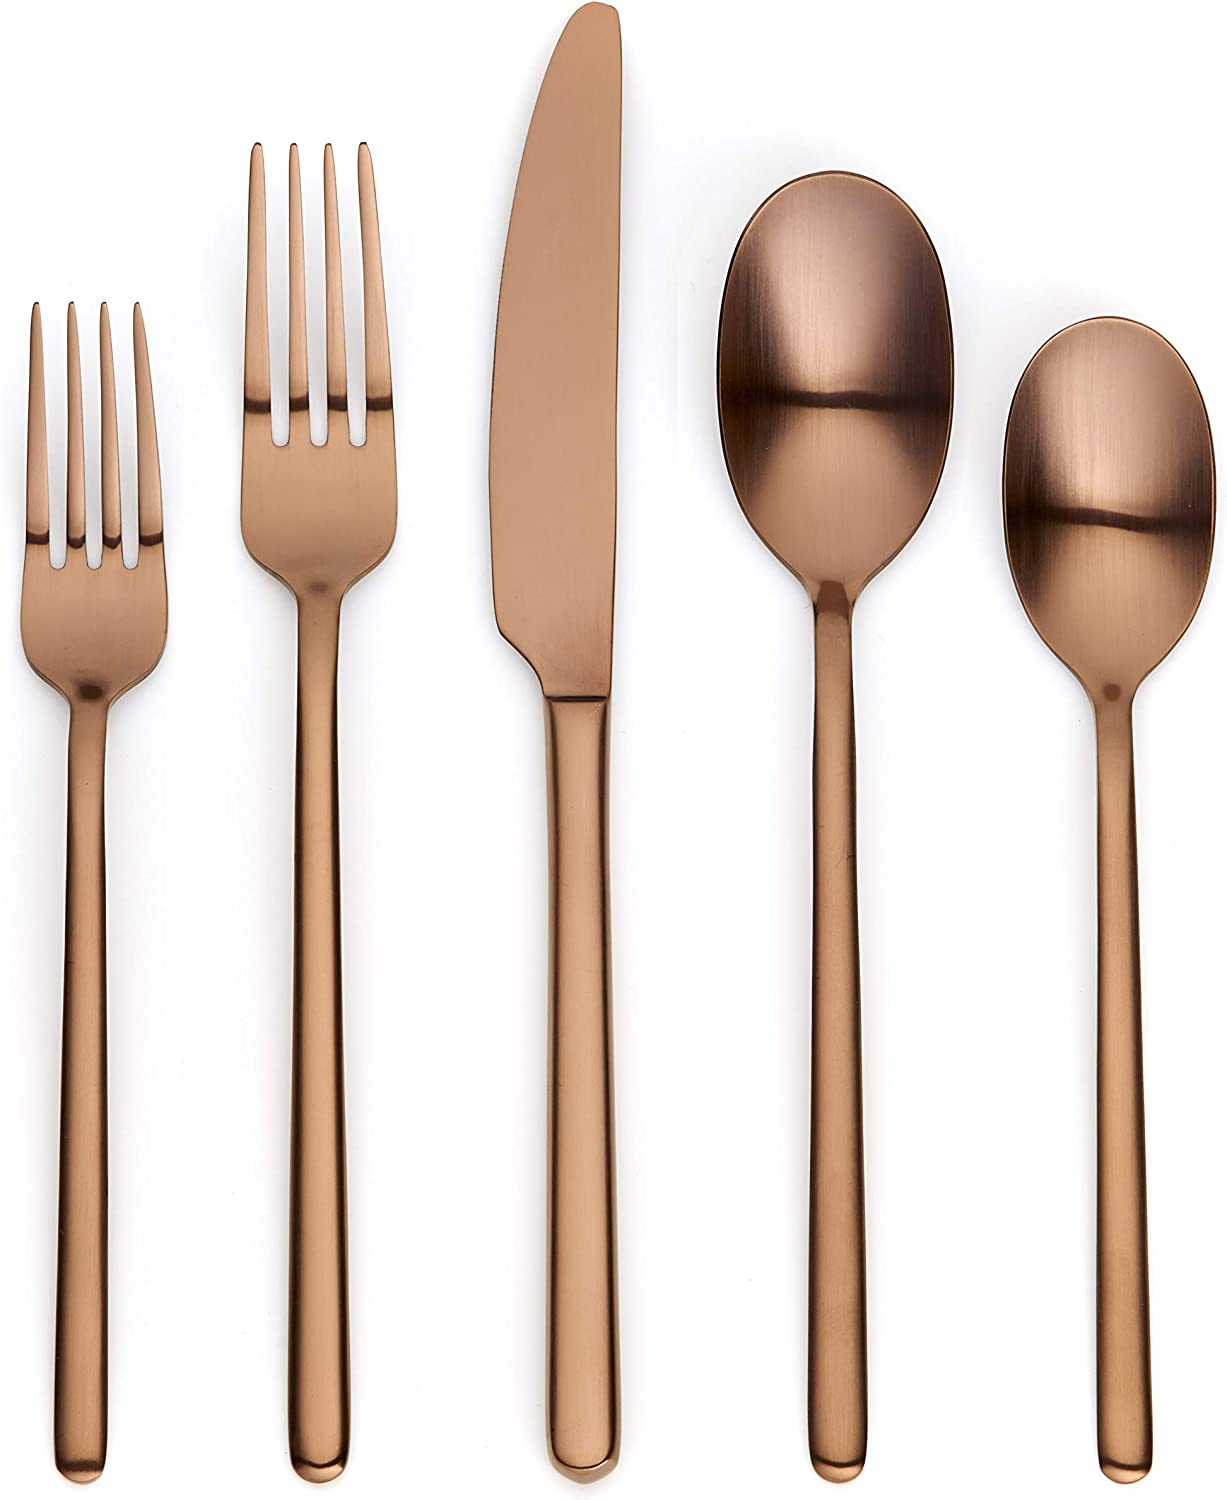 Ornative Jayden 20-Piece Stainless Steel Flatware Set  Silverware Set for 4  Copper   Includes Forks, Knives, and Spoons  Dishwasher Safe  Durable and Easy Care  Best Silverware